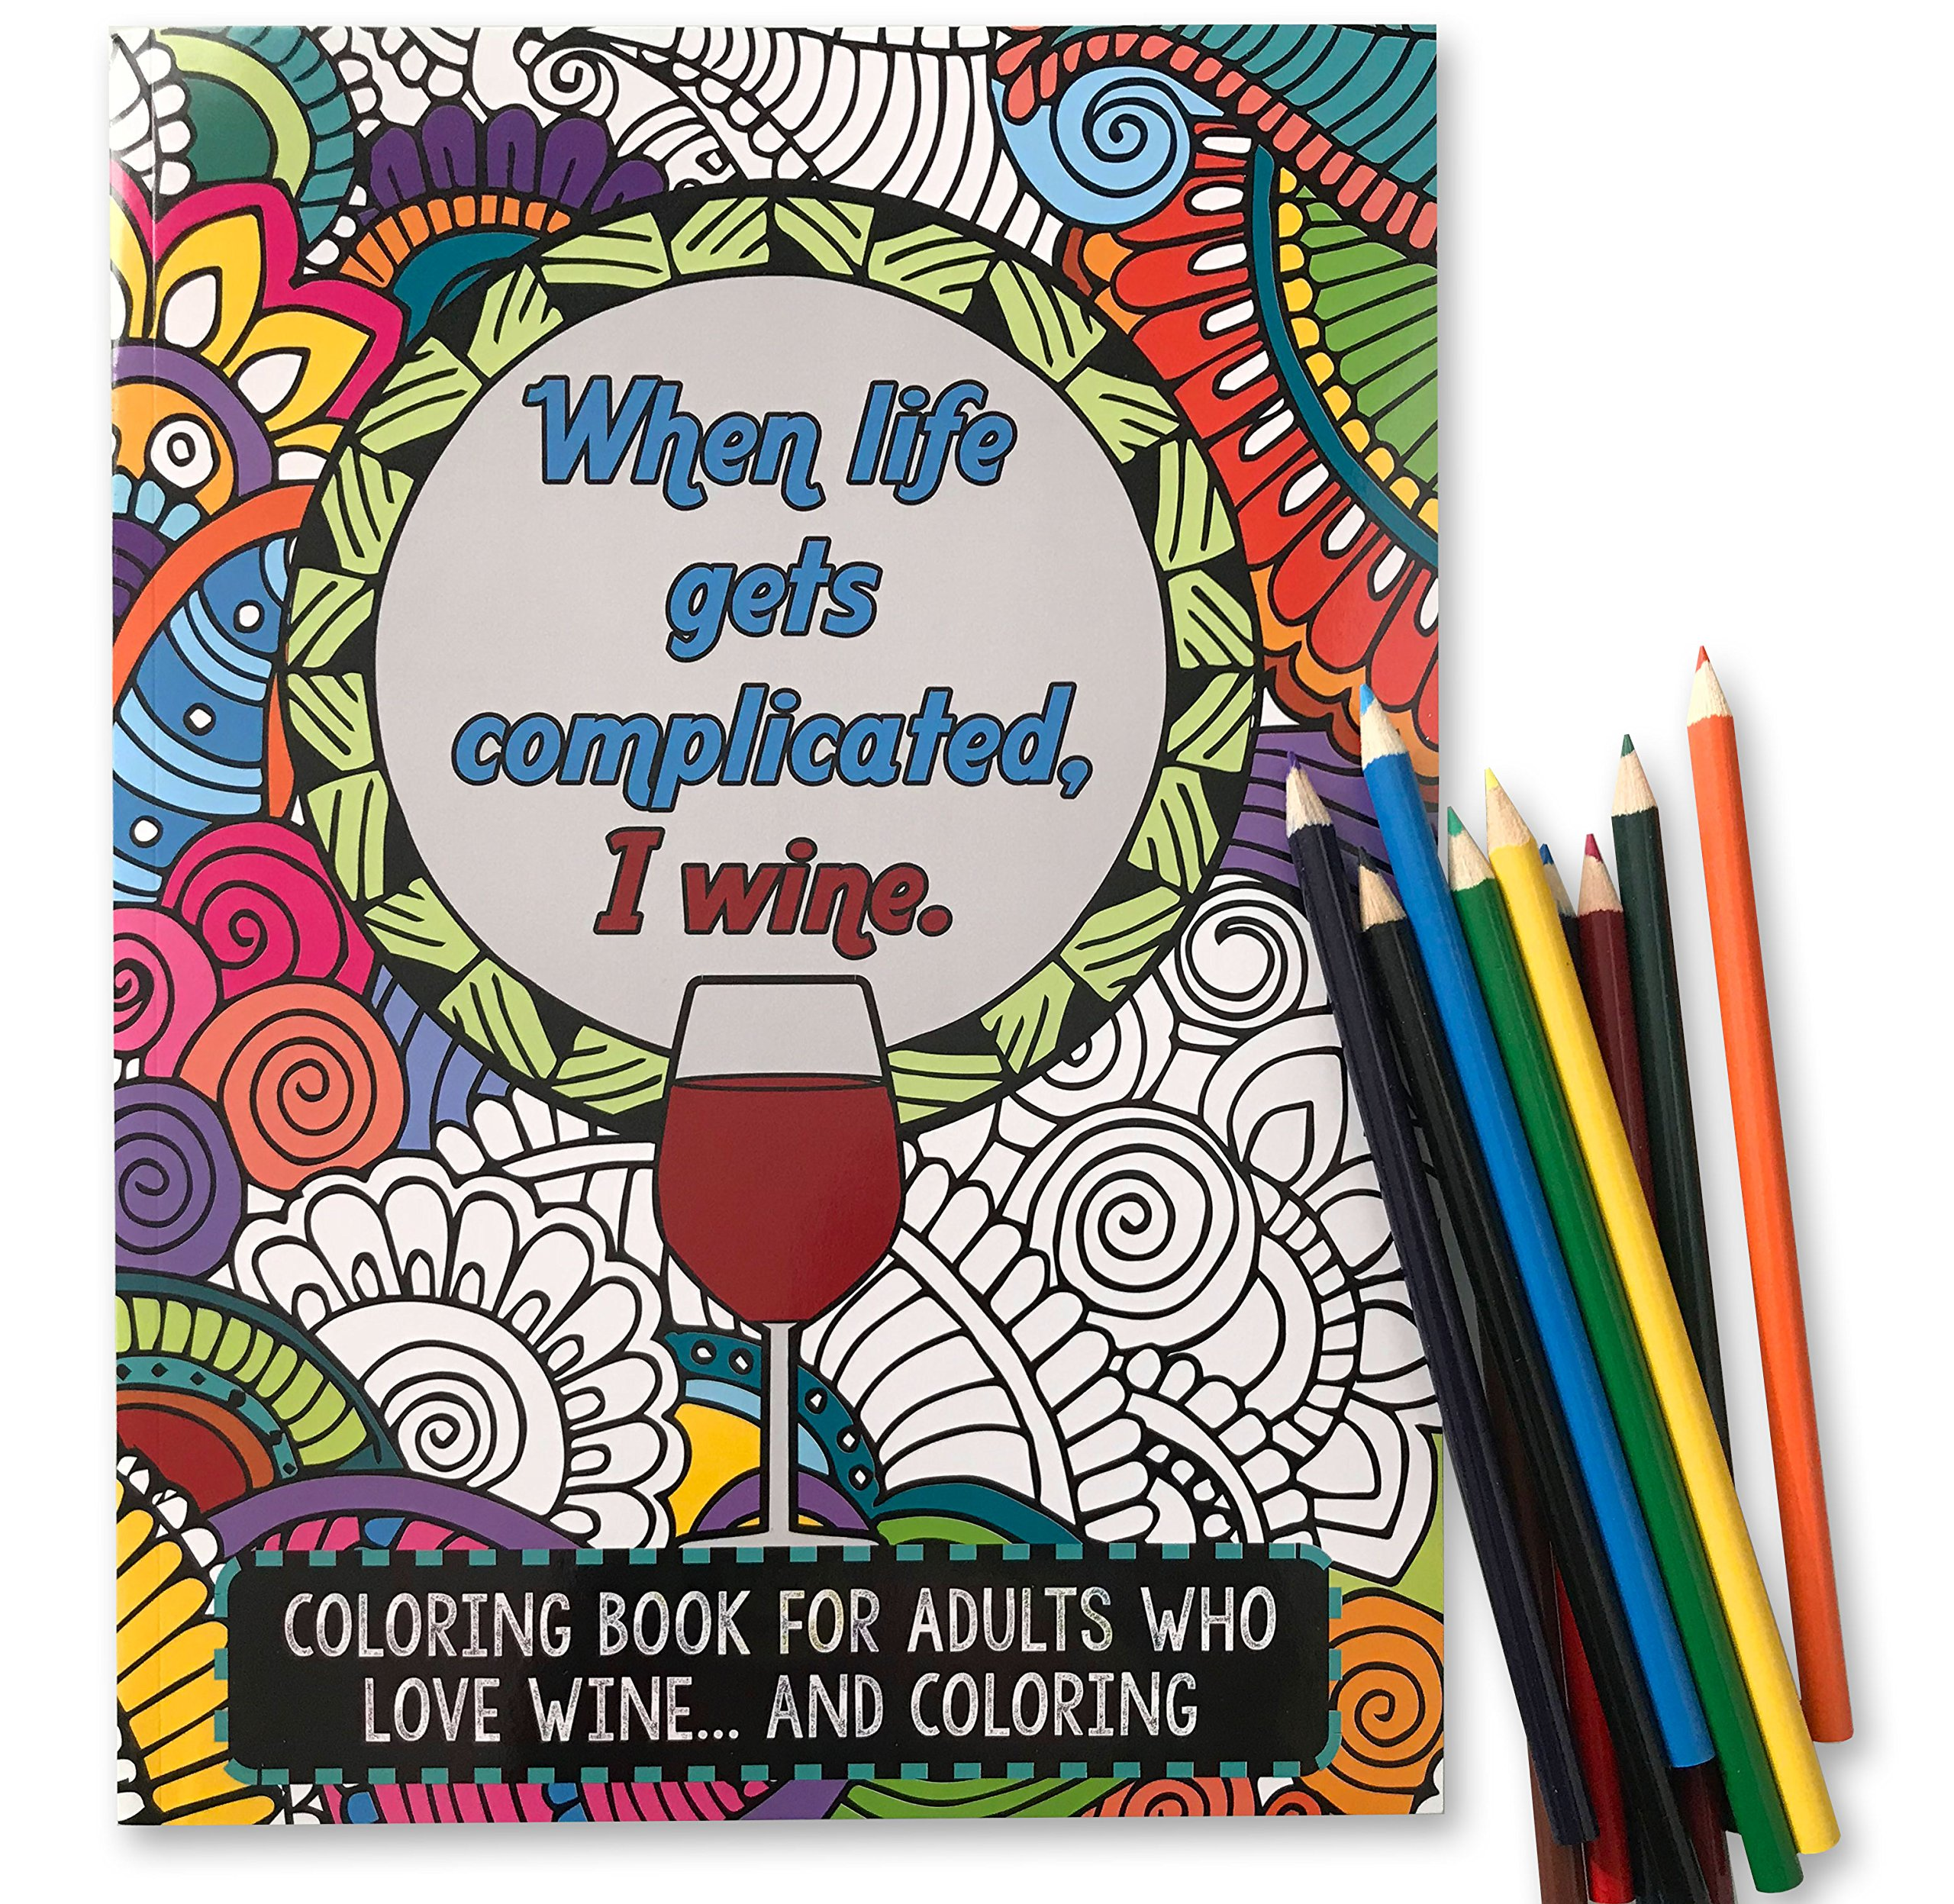 When Life Gets Complicated, I Wine - Funny Adult Coloring Book - Includes 12 Colored Pencils - Perfect White Elephant, Novelty Gift, or Gifts for Women Friends by Maad